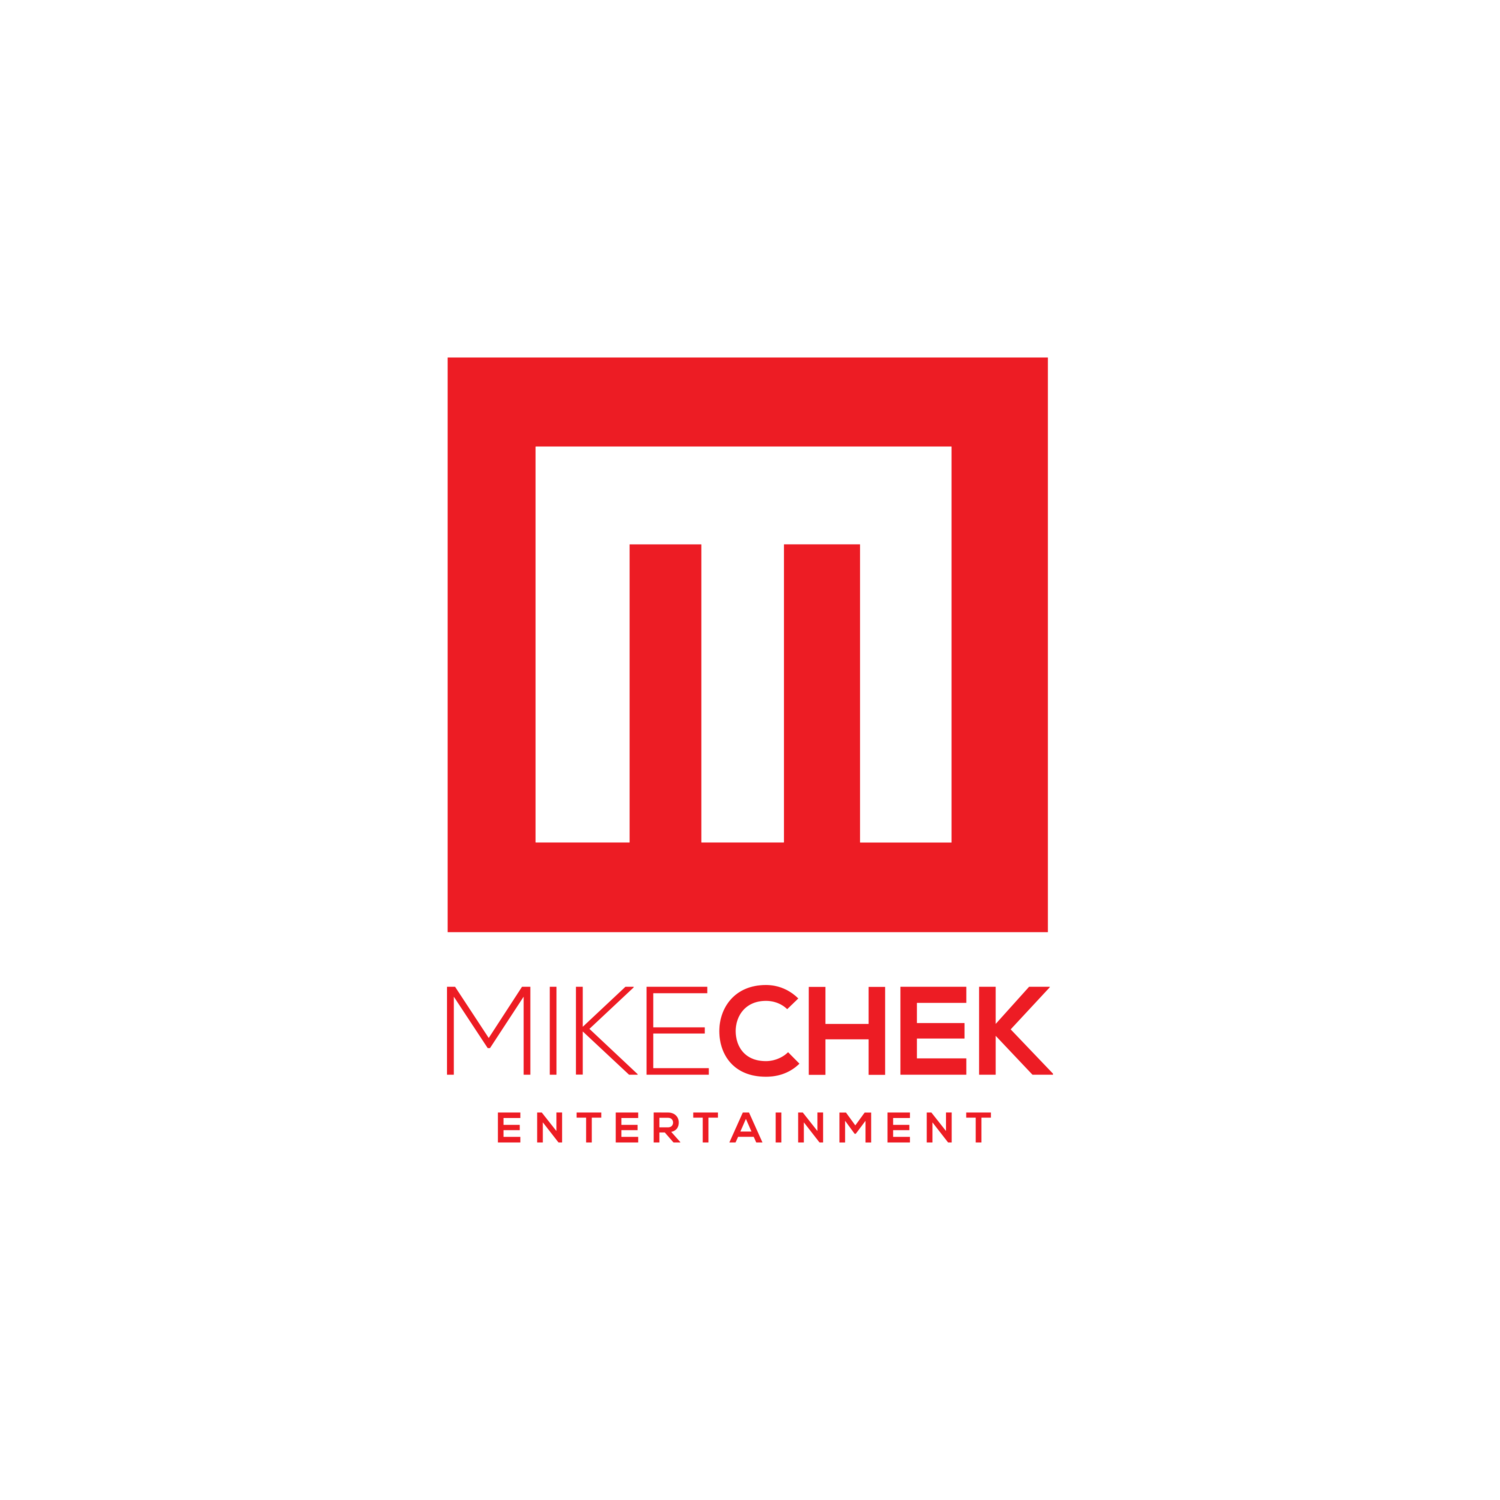 Mike Chek Entertainment